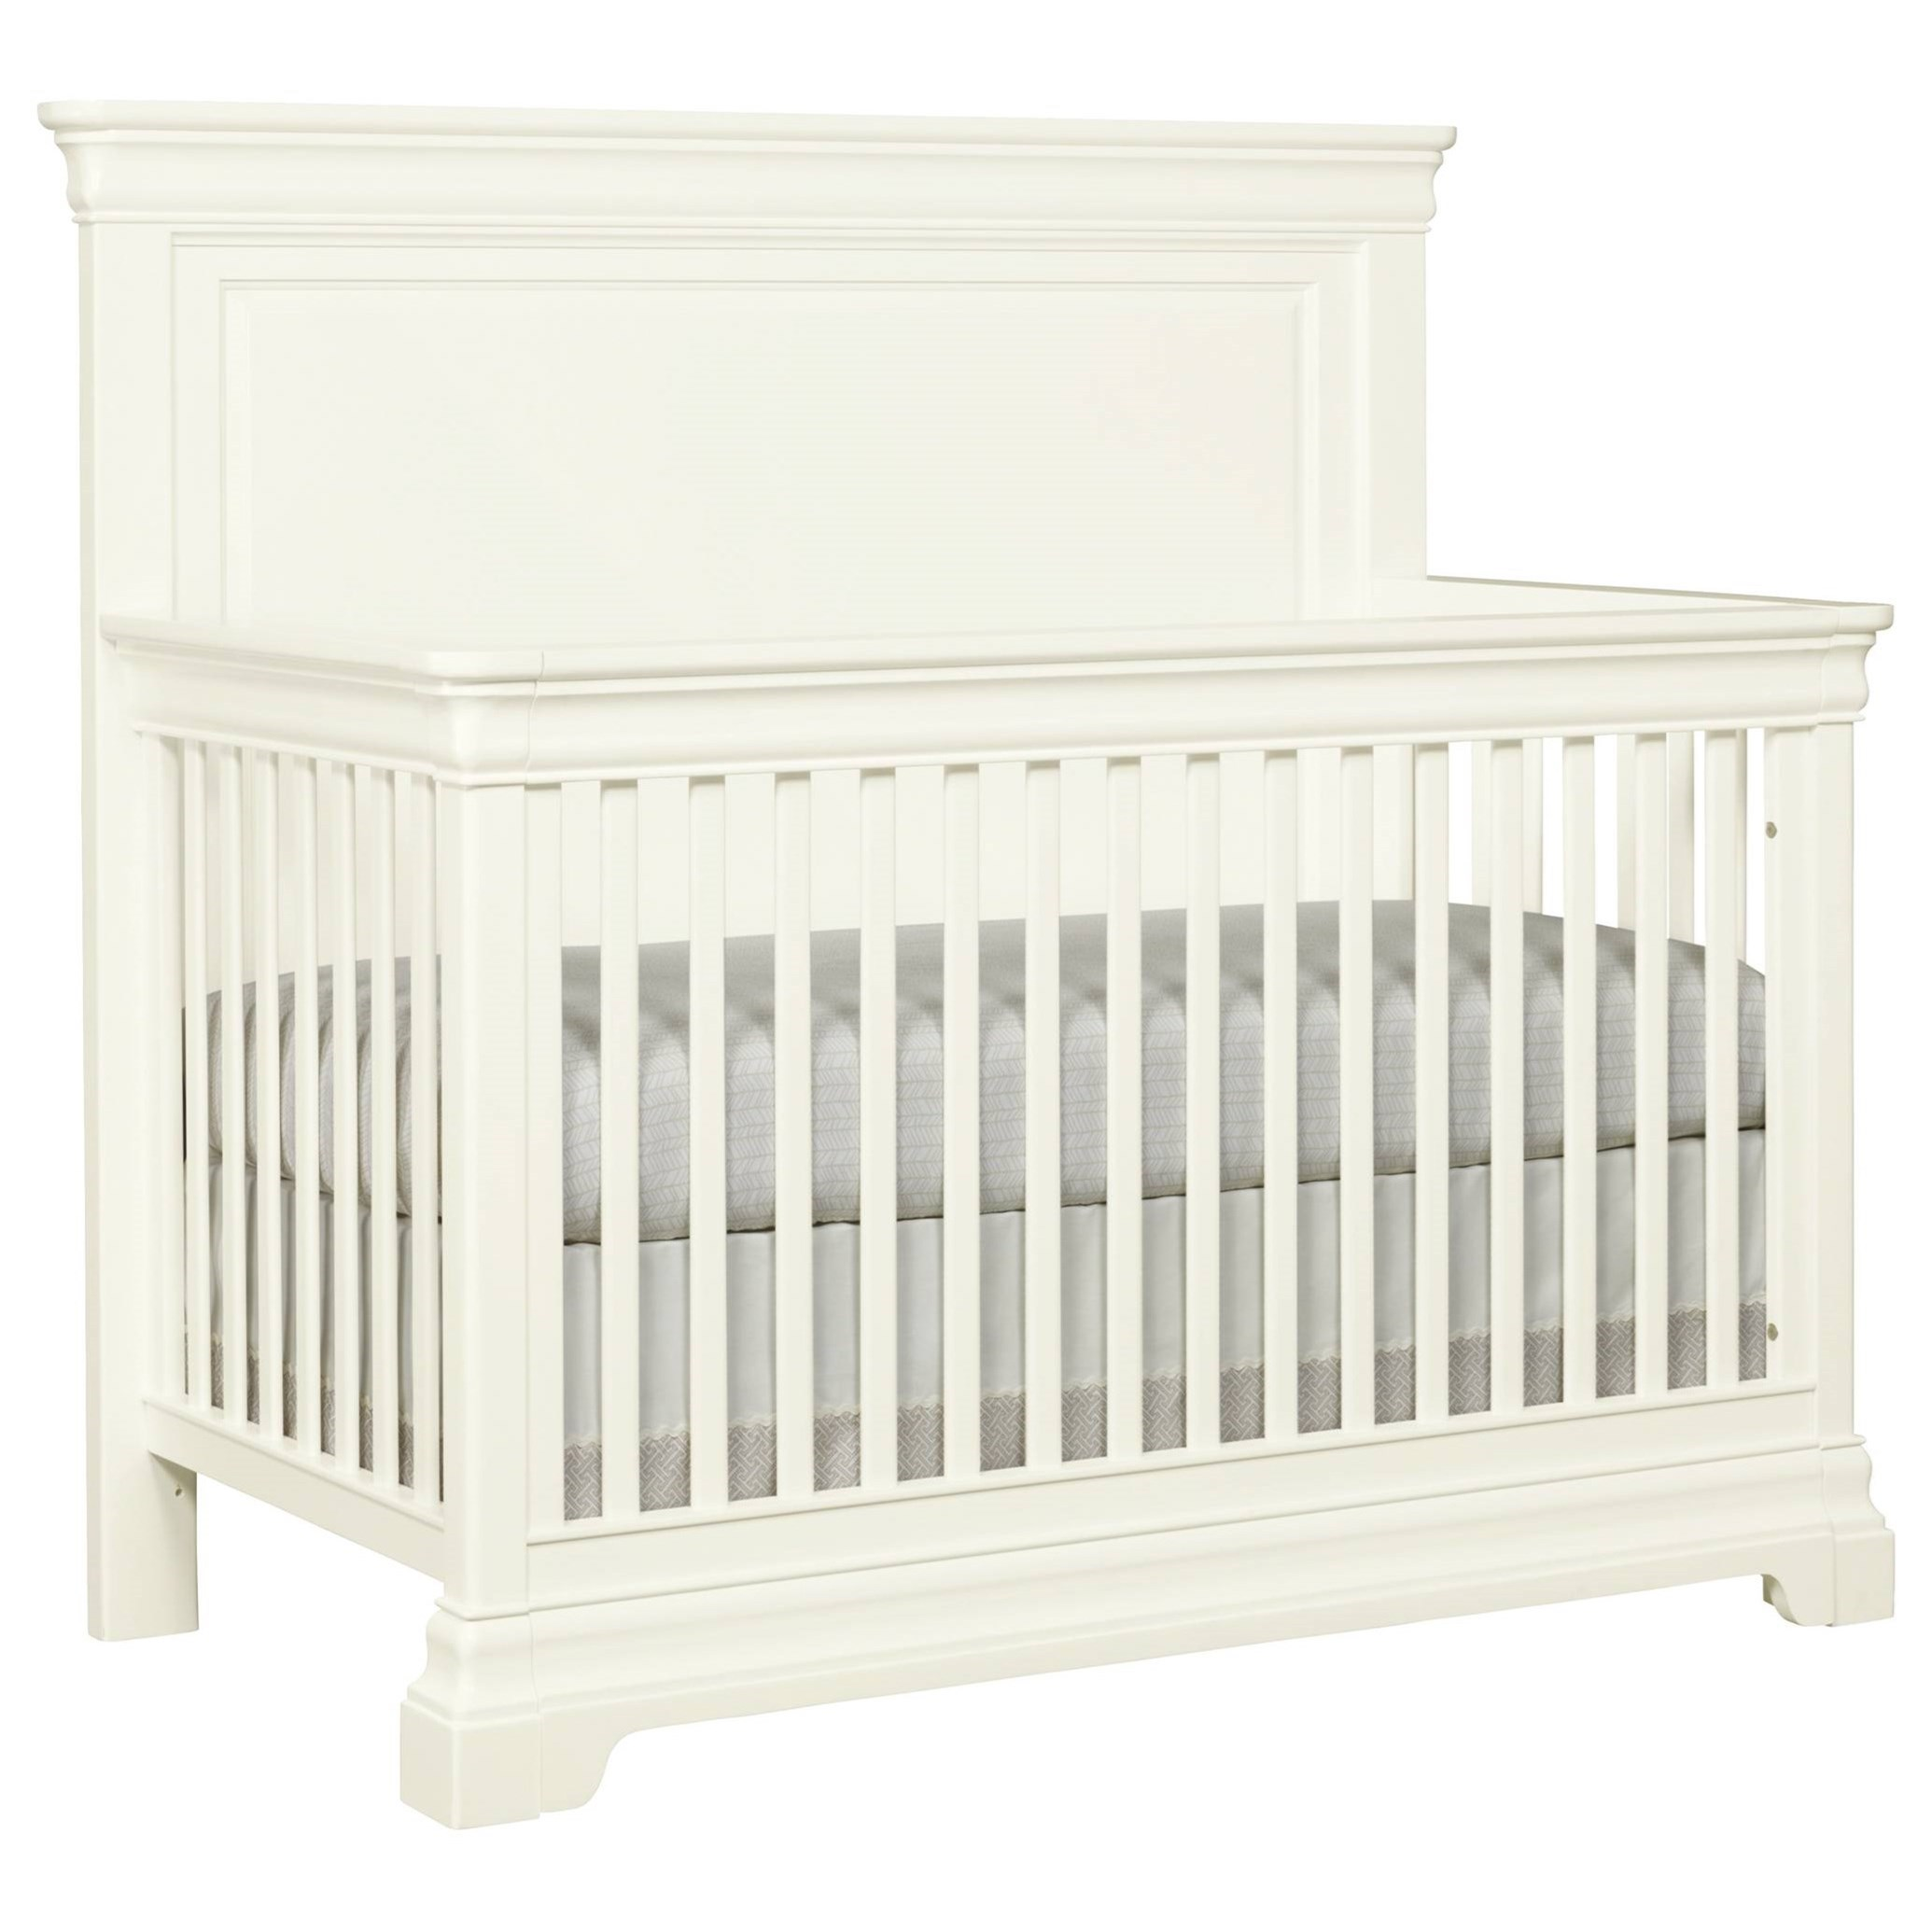 Stone & Leigh Furniture Teaberry Lane Built To Grow Crib - Item Number: 575-23-50